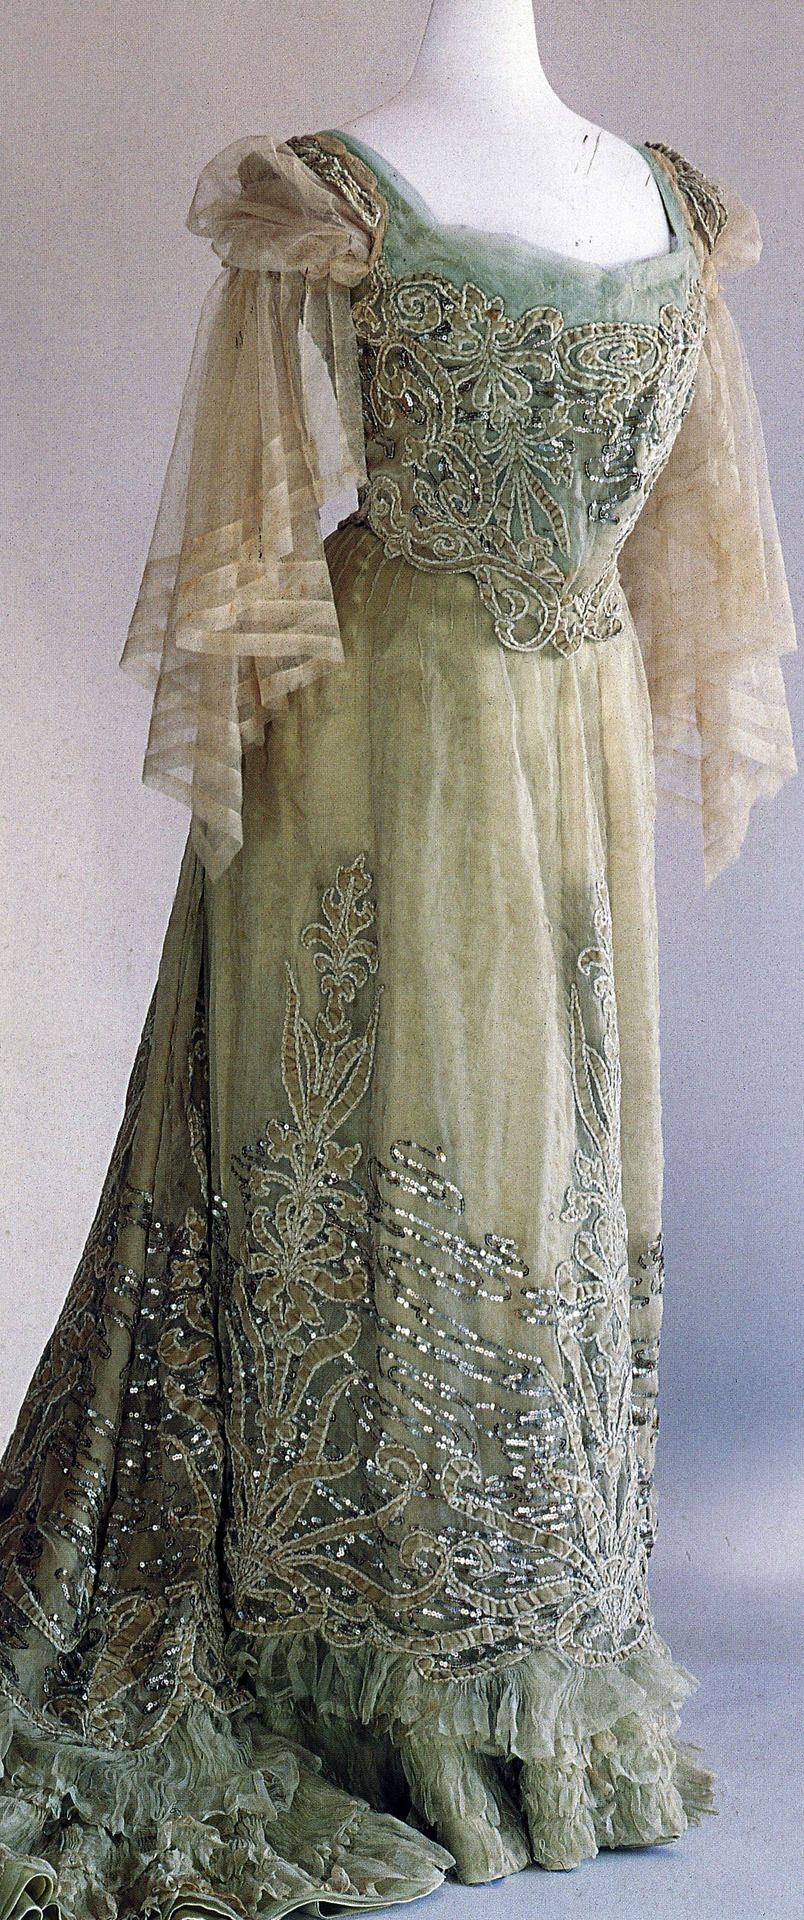 charles frederick worth | Tumblr ~ Beautiful Unique Ball Gowns ...